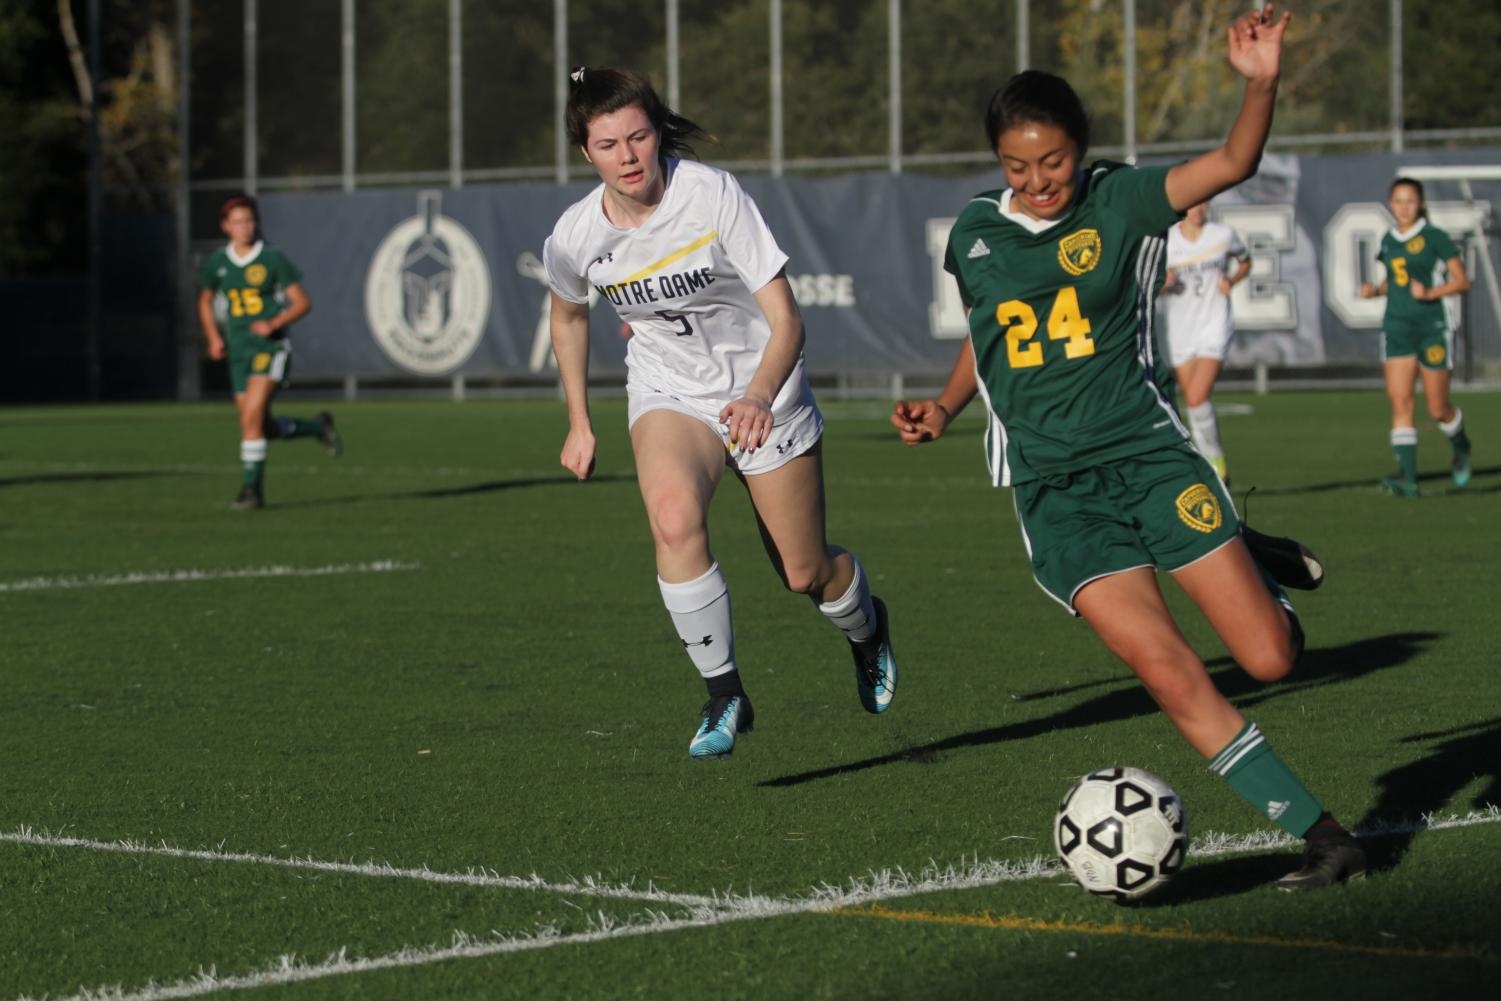 Defender Grace Earley ('19) puts pressure for control of the ball.